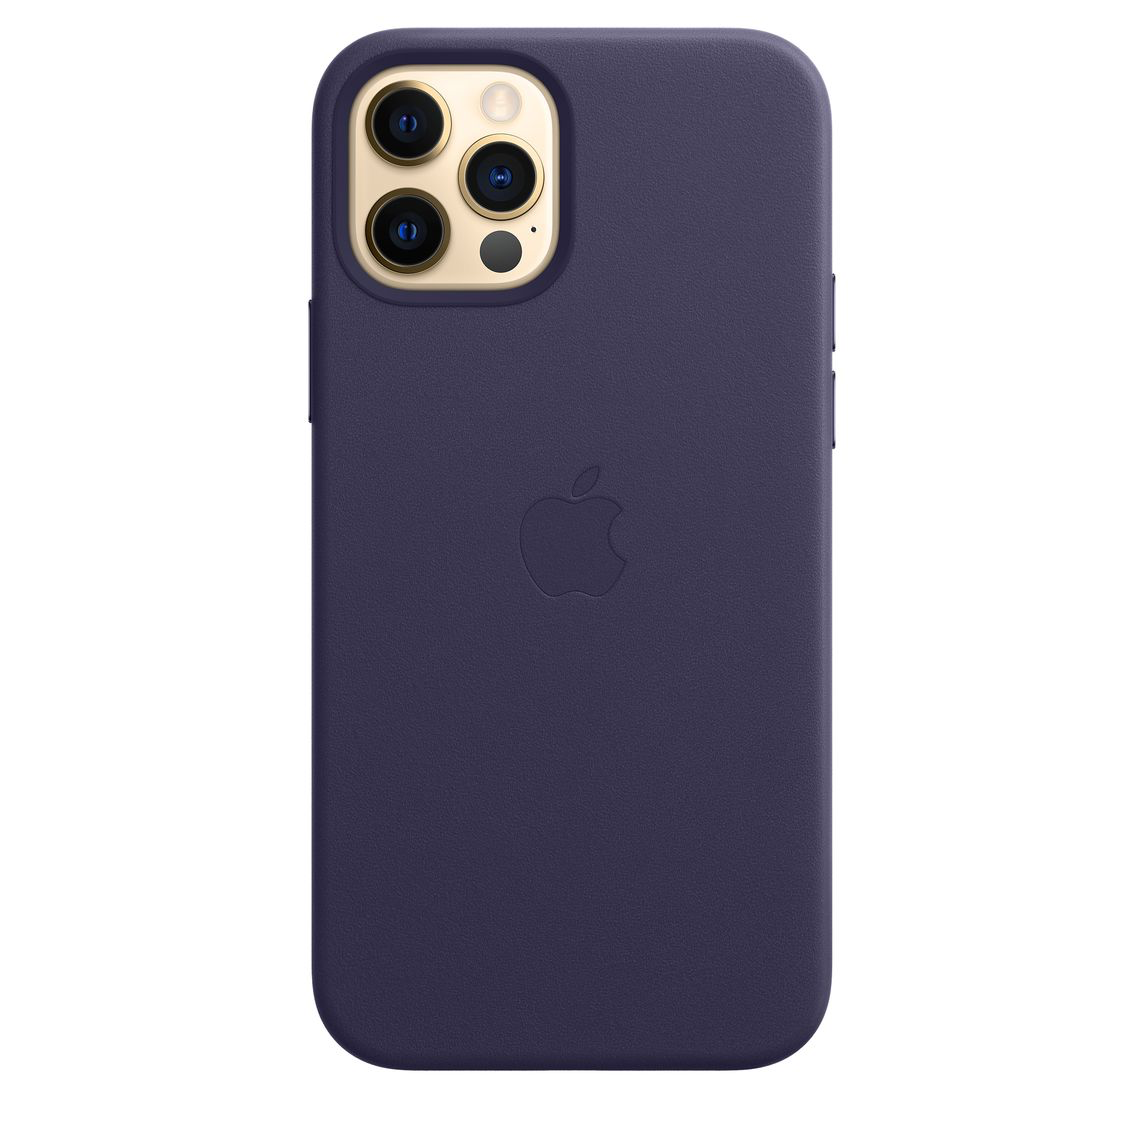 Apple iPhone 12 Pro Max Leather Case with MagSafe Deep Violet